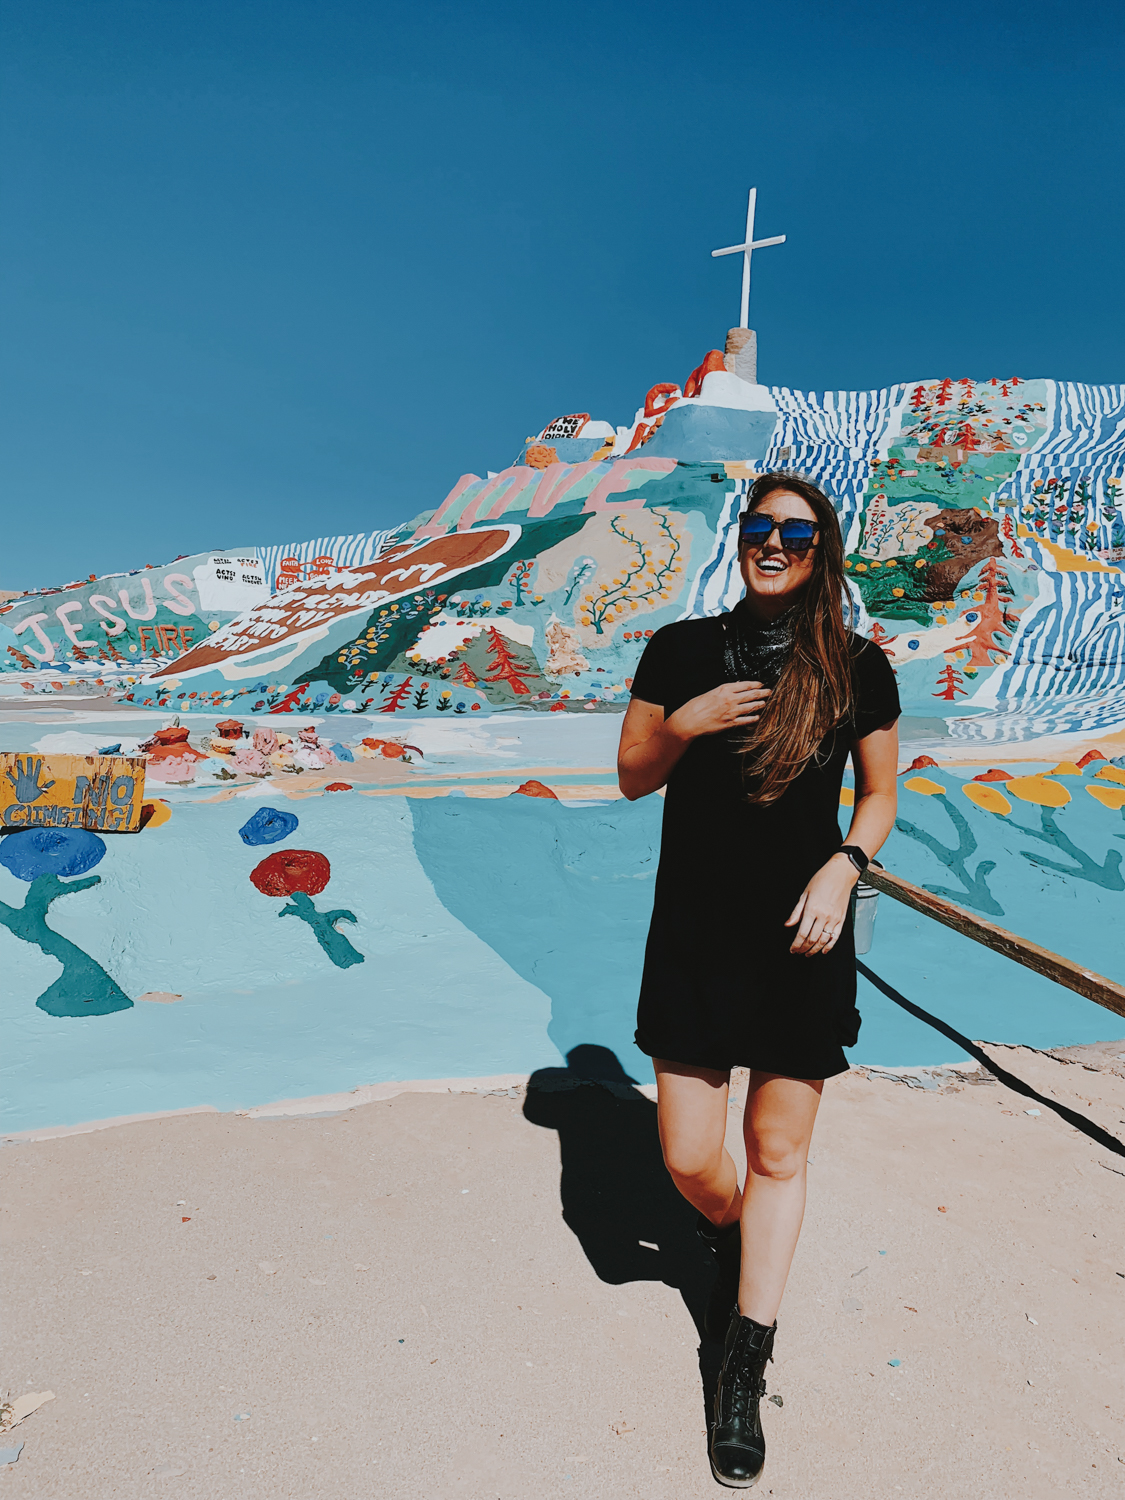 katherine_mendieta_salvationa_mountain_southern_california.jpg